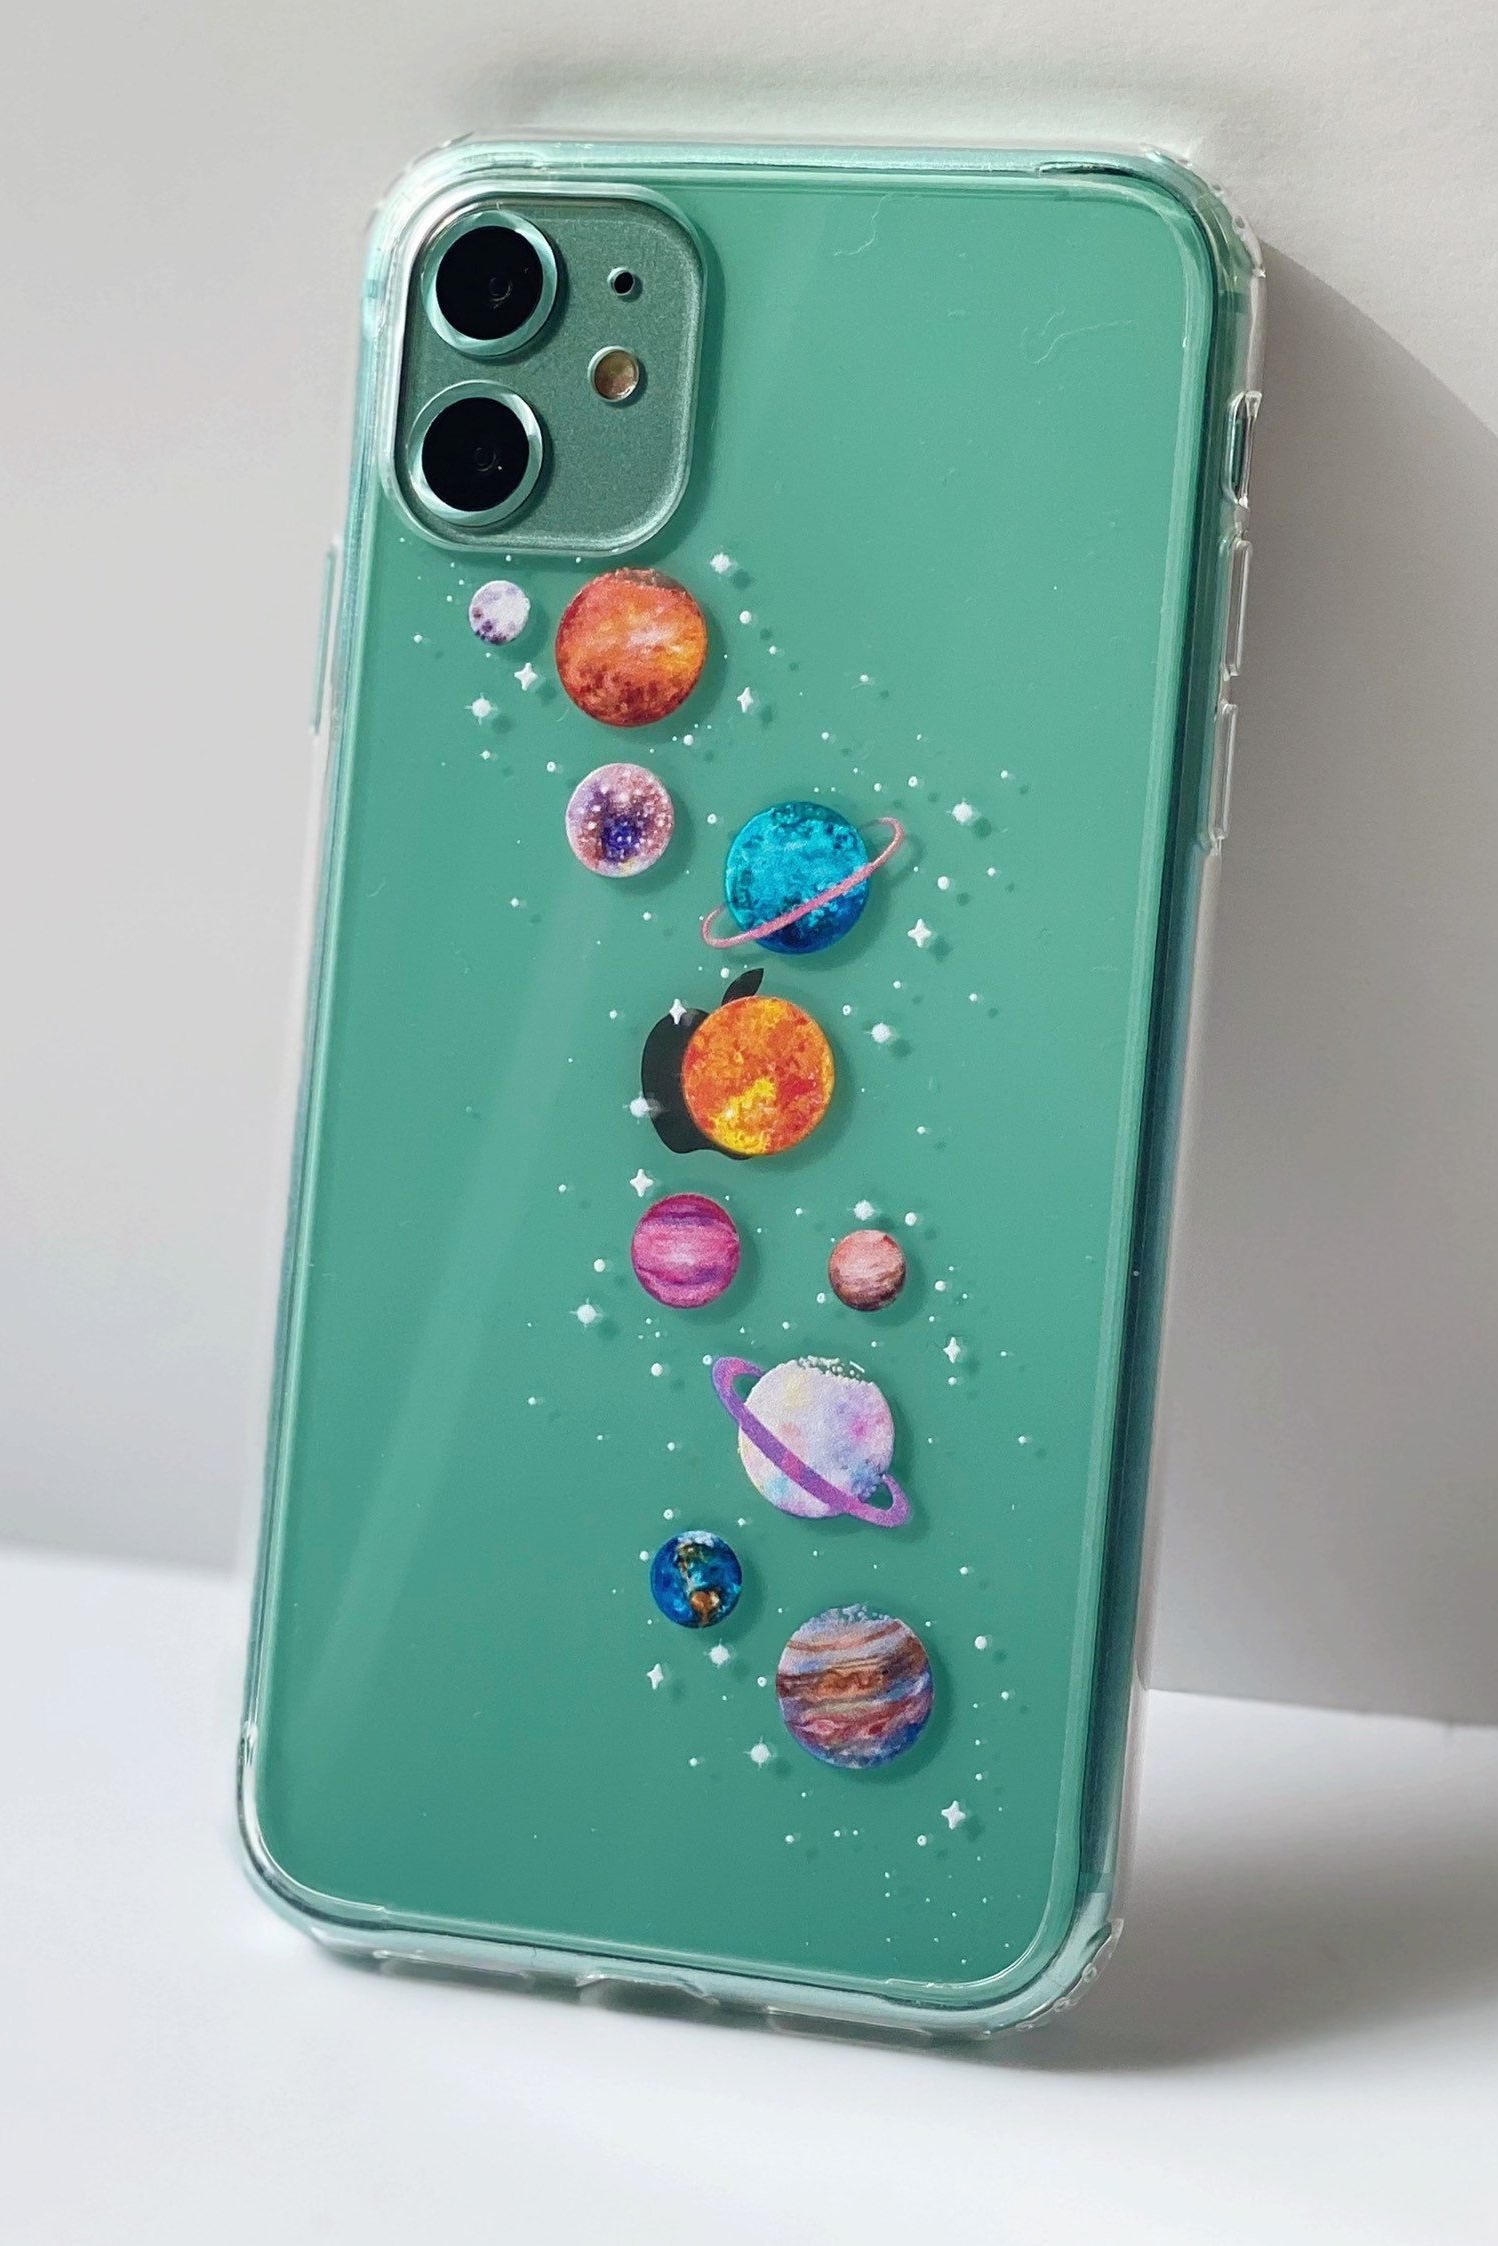 Galaxy Planets Phone Case Space Cover For Iphone 12 11 Pro Xs Etsy Phone Case Diy Paint Diy Phone Case Apple Phone Case